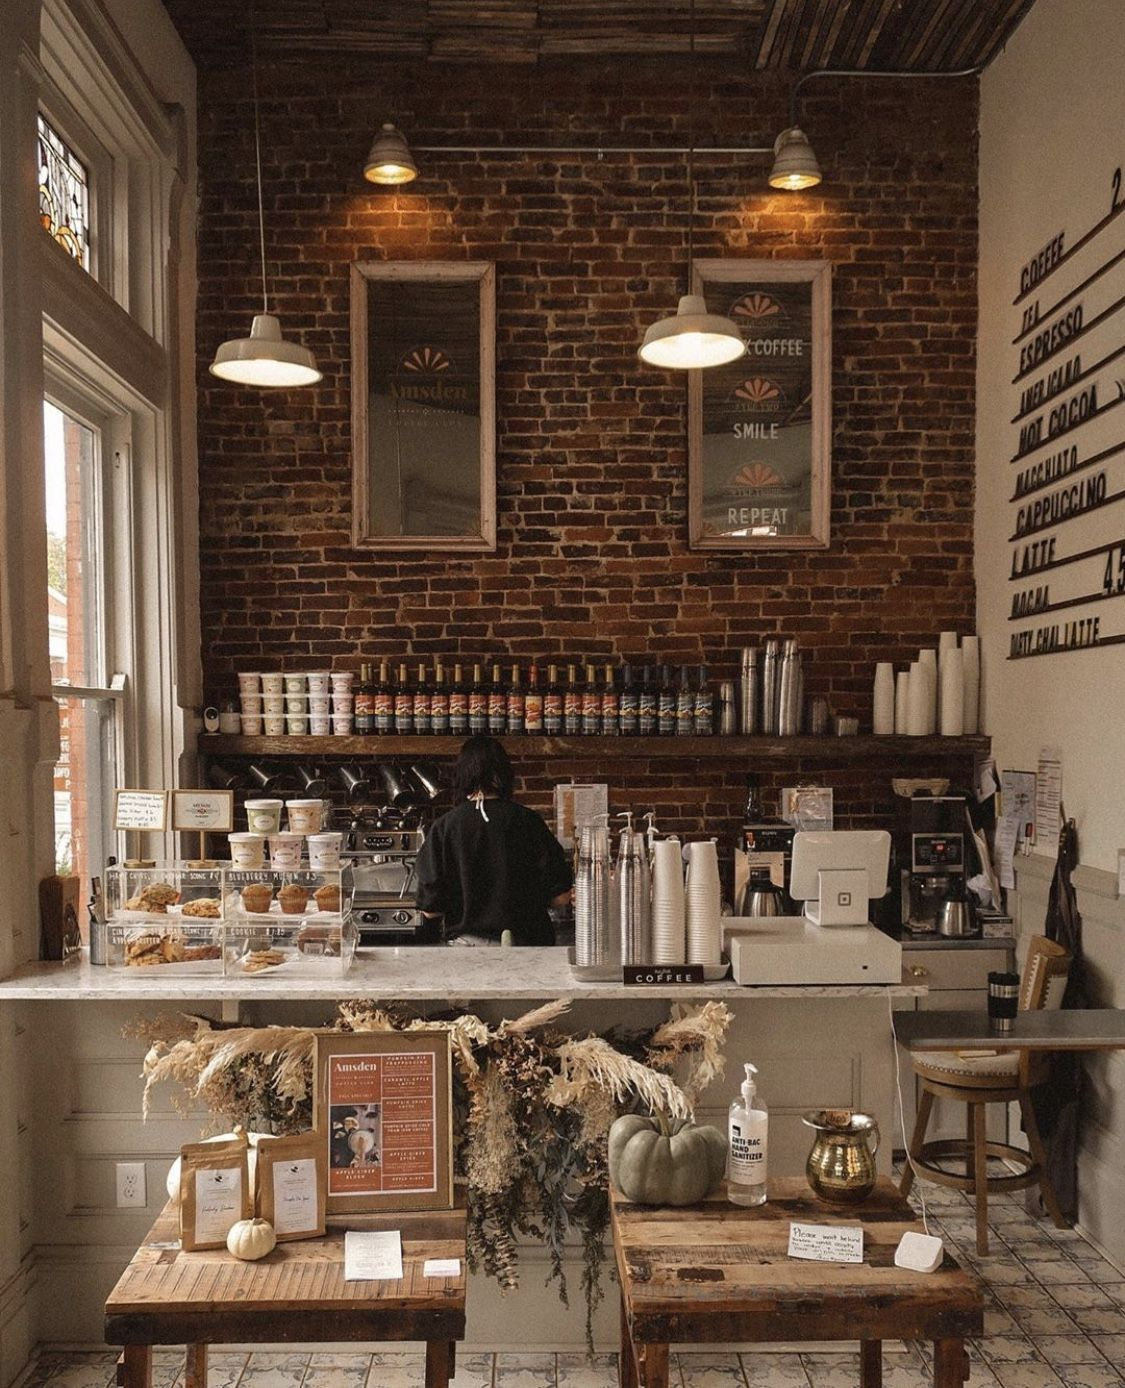 How To Design The Perfect Coffee Shop In 2020 Coffee Shop Design Coffee Shop Aesthetic Coffee Shop Decor